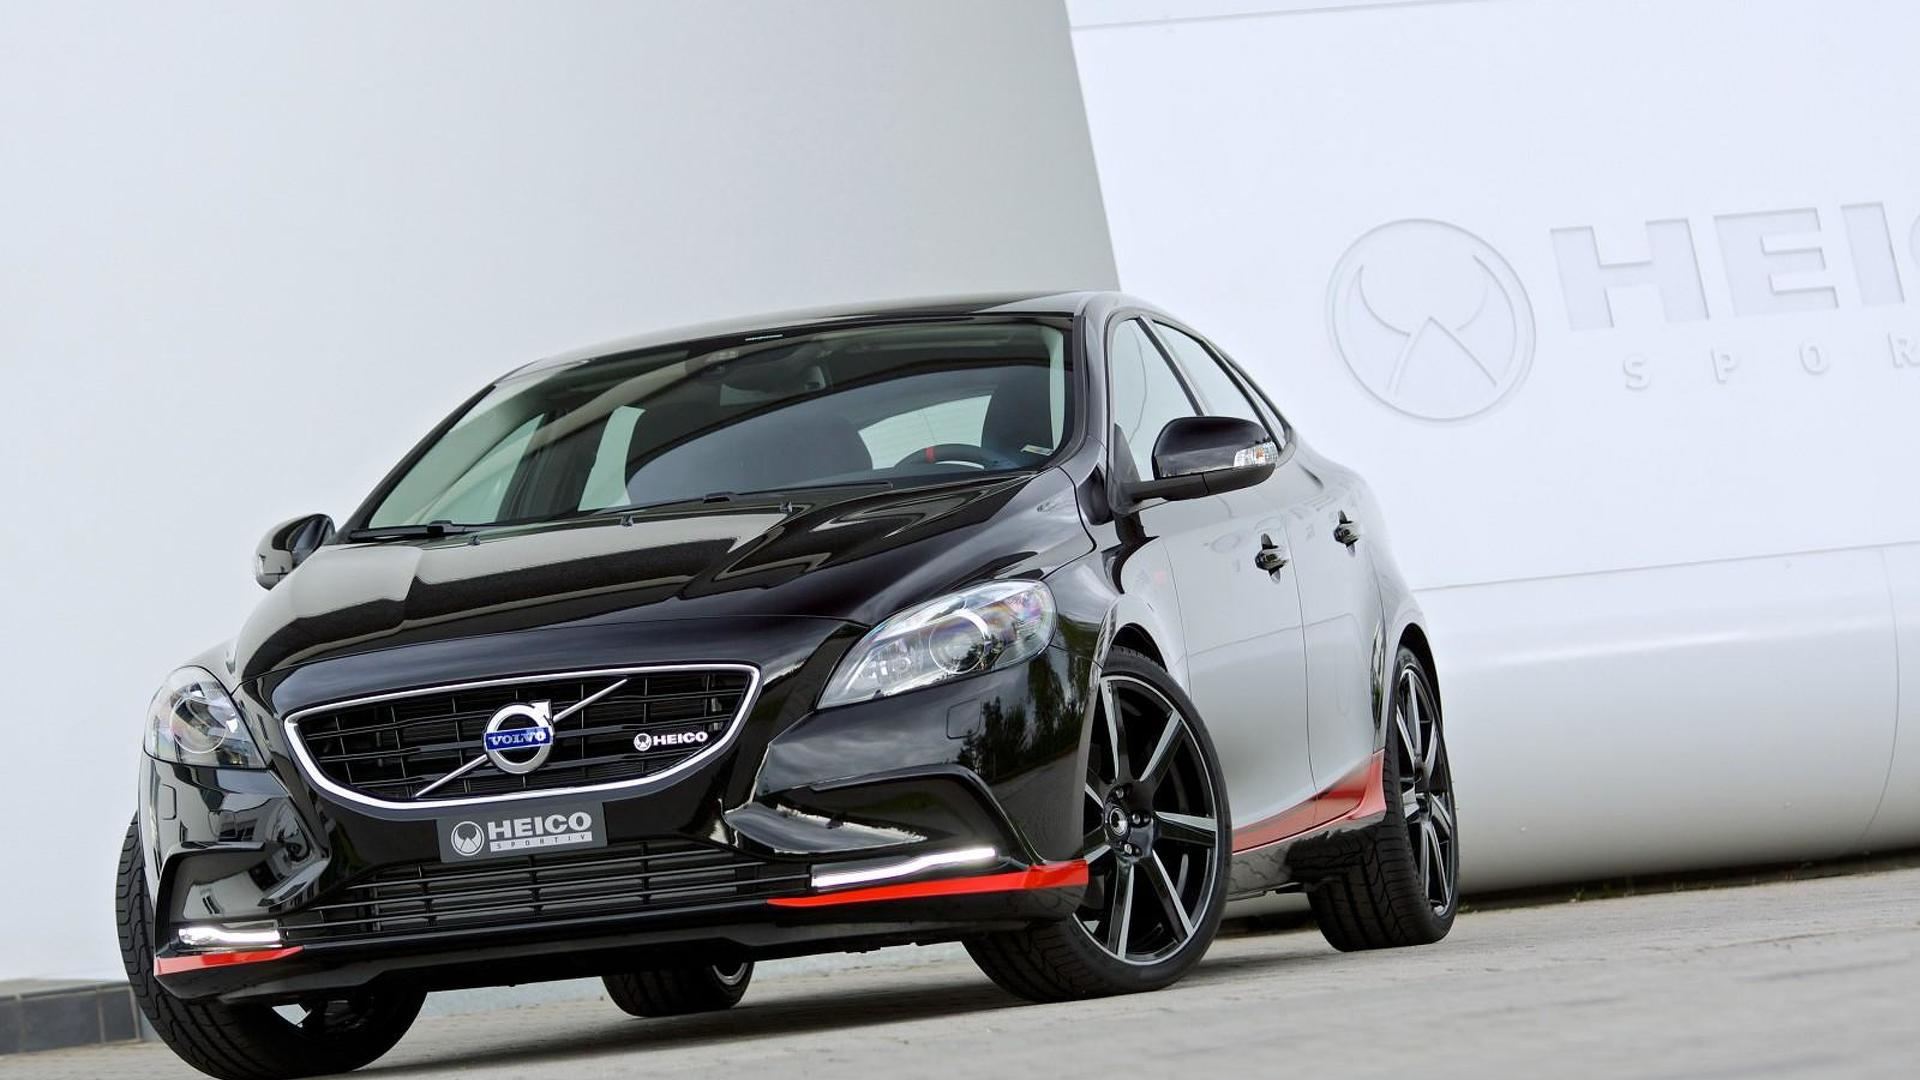 Volvo V40 Pirelli by Heico Sportiv revealed